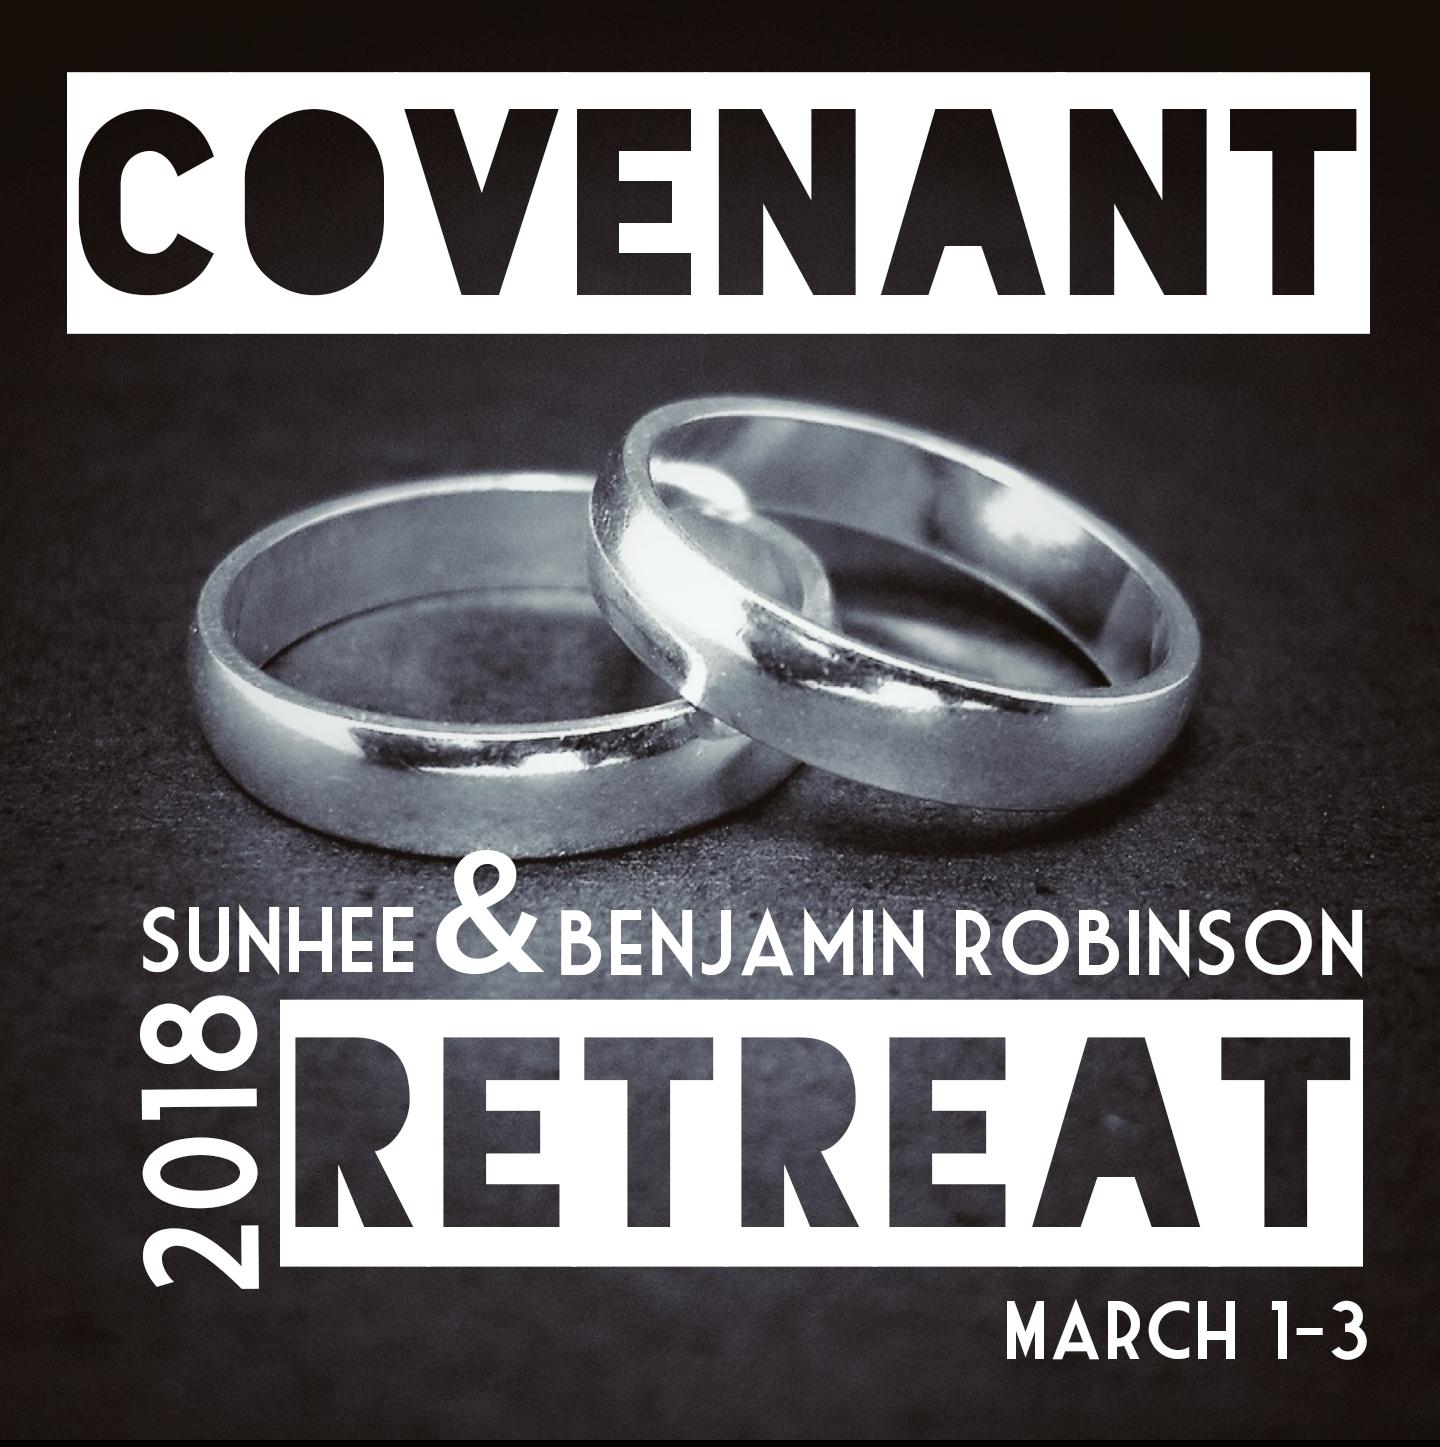 2018 Covenant Retreat March 1-3, 2018